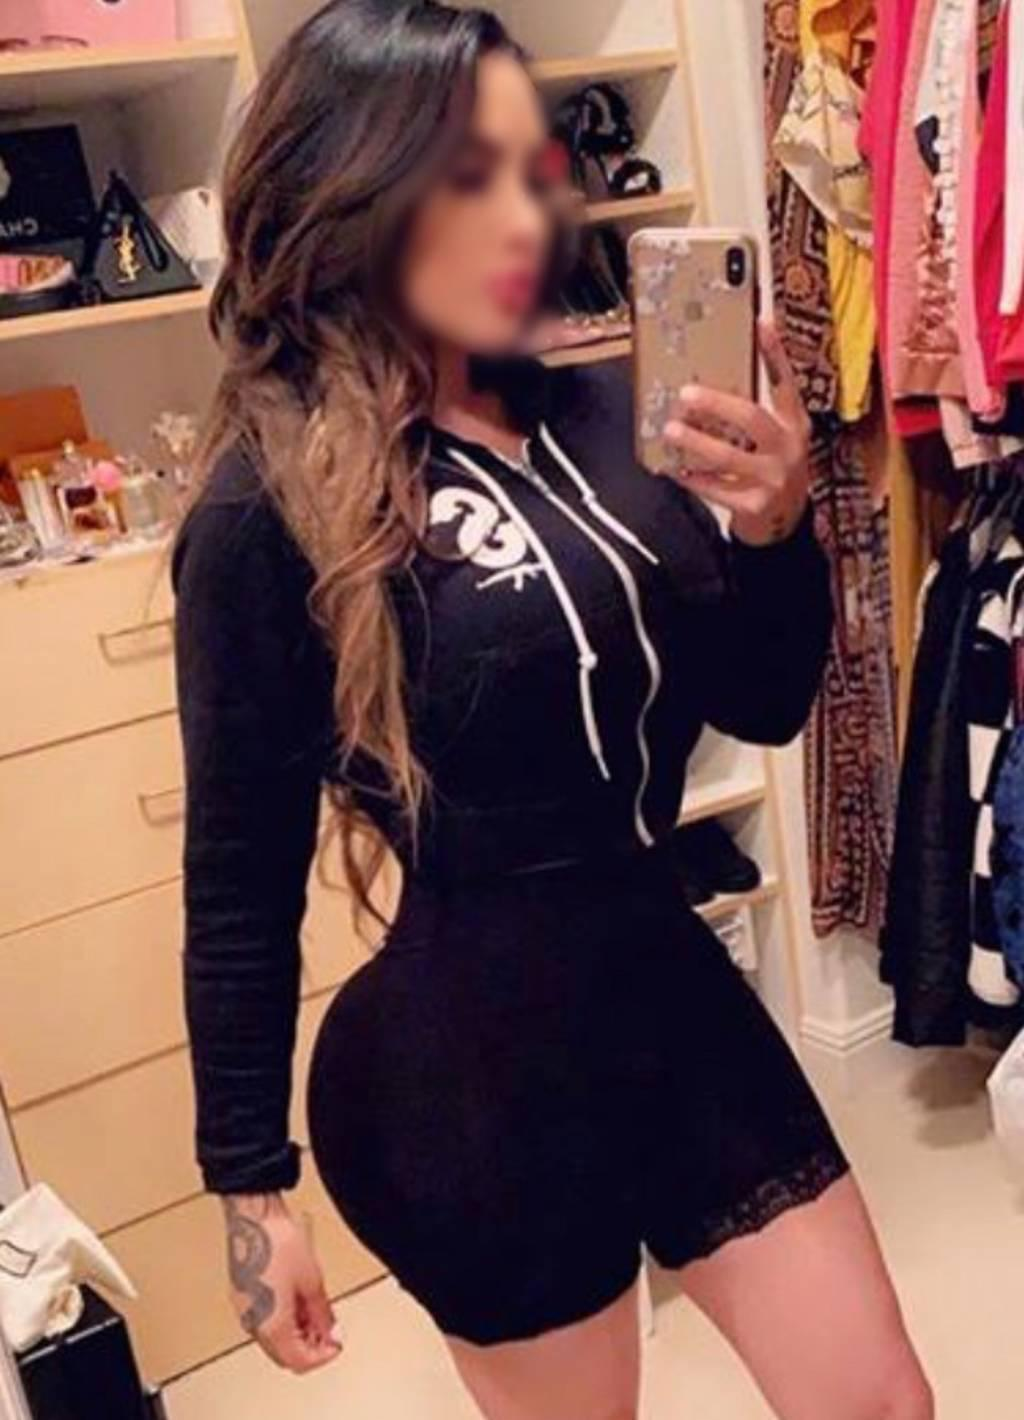 VERIFIED- • 36DD BuXoM €urvy Party Brunette ★ Outcall Only!